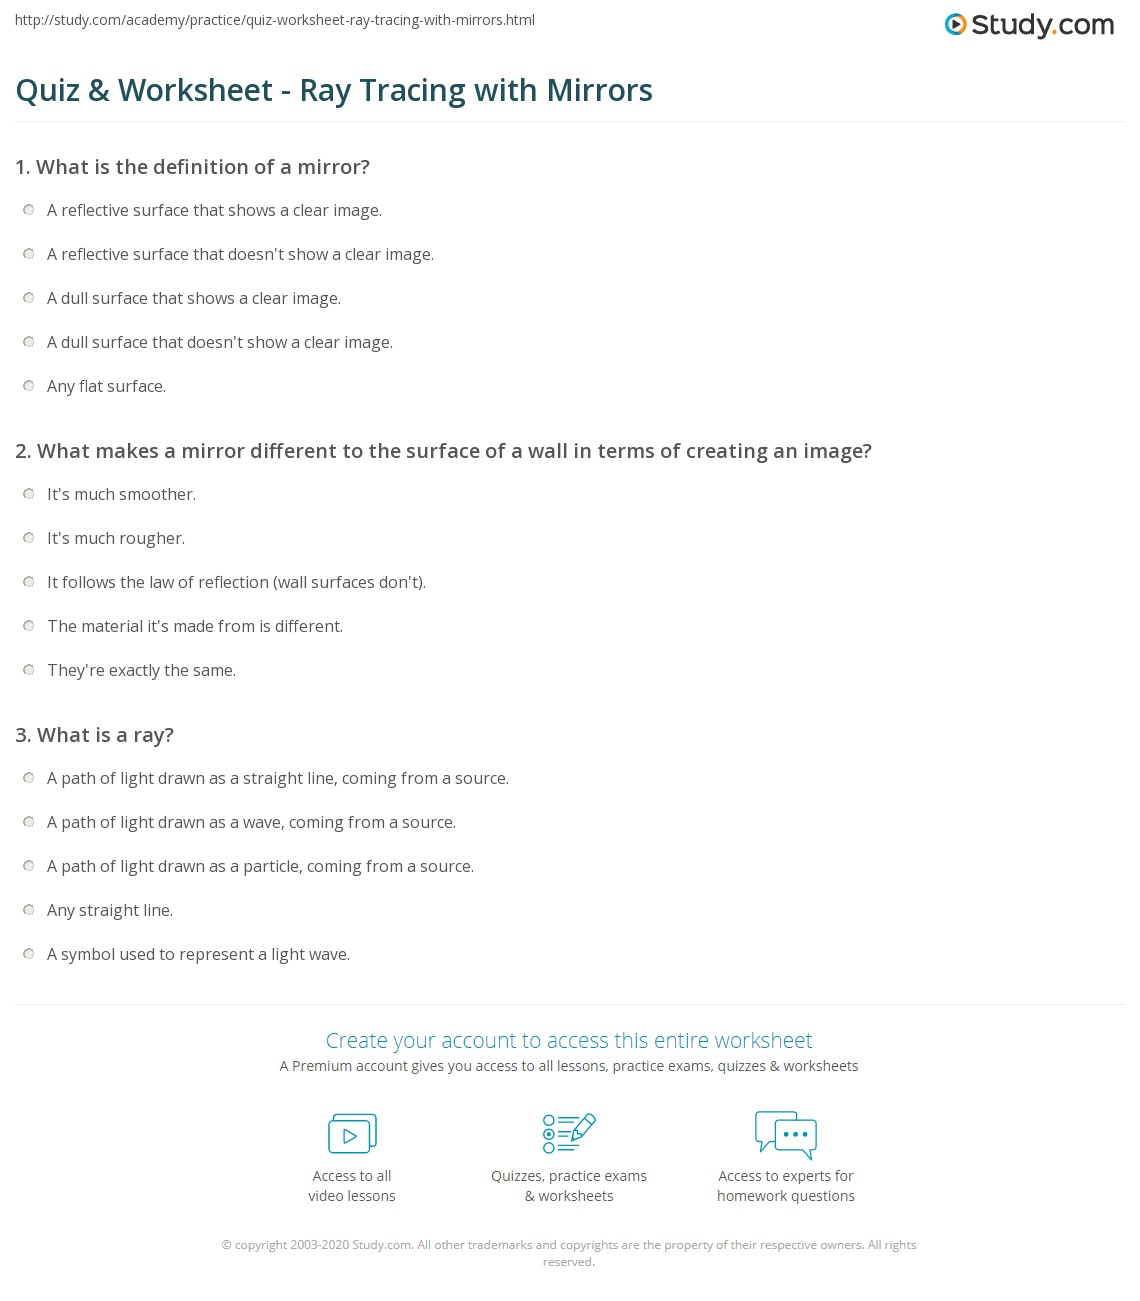 Quiz Worksheet Ray Tracing With Mirrors Study